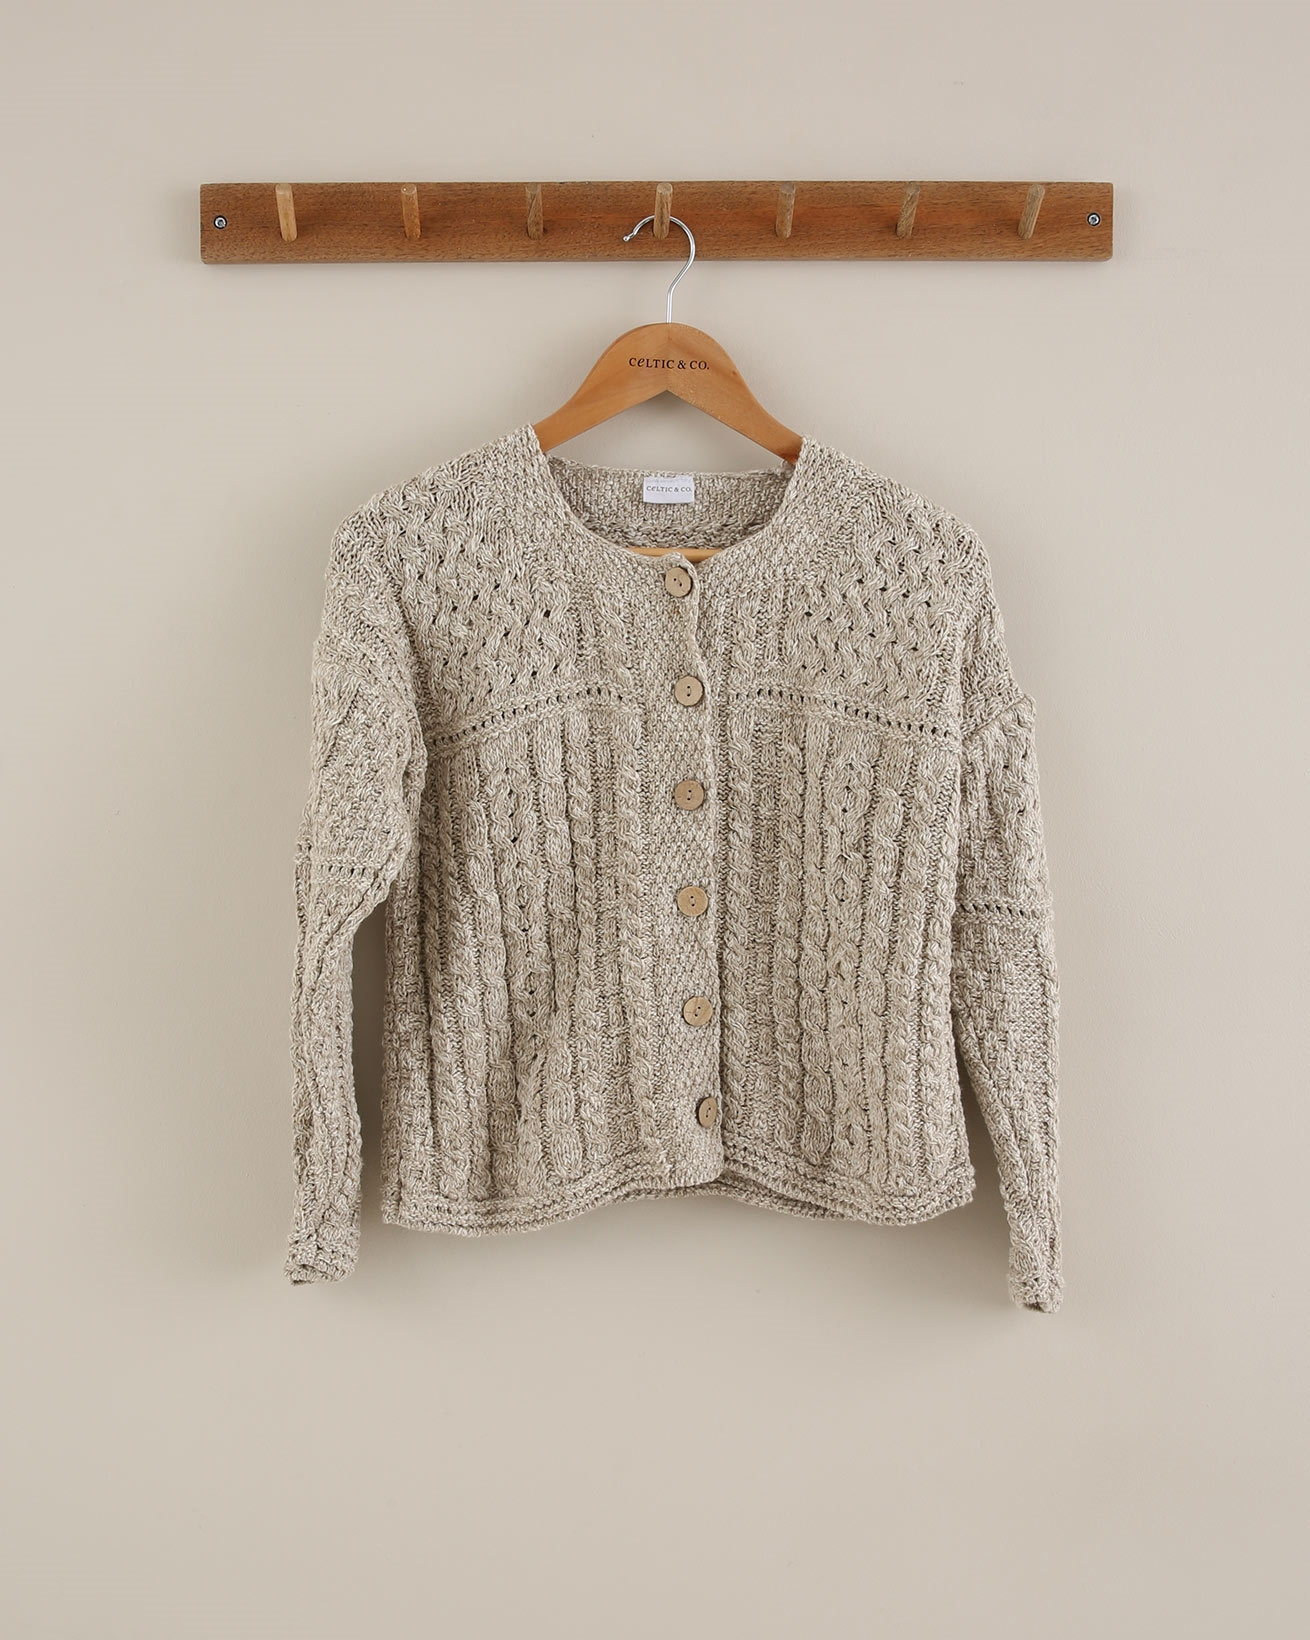 Knitted Linen Cardi - Size Small - Natural - 1690